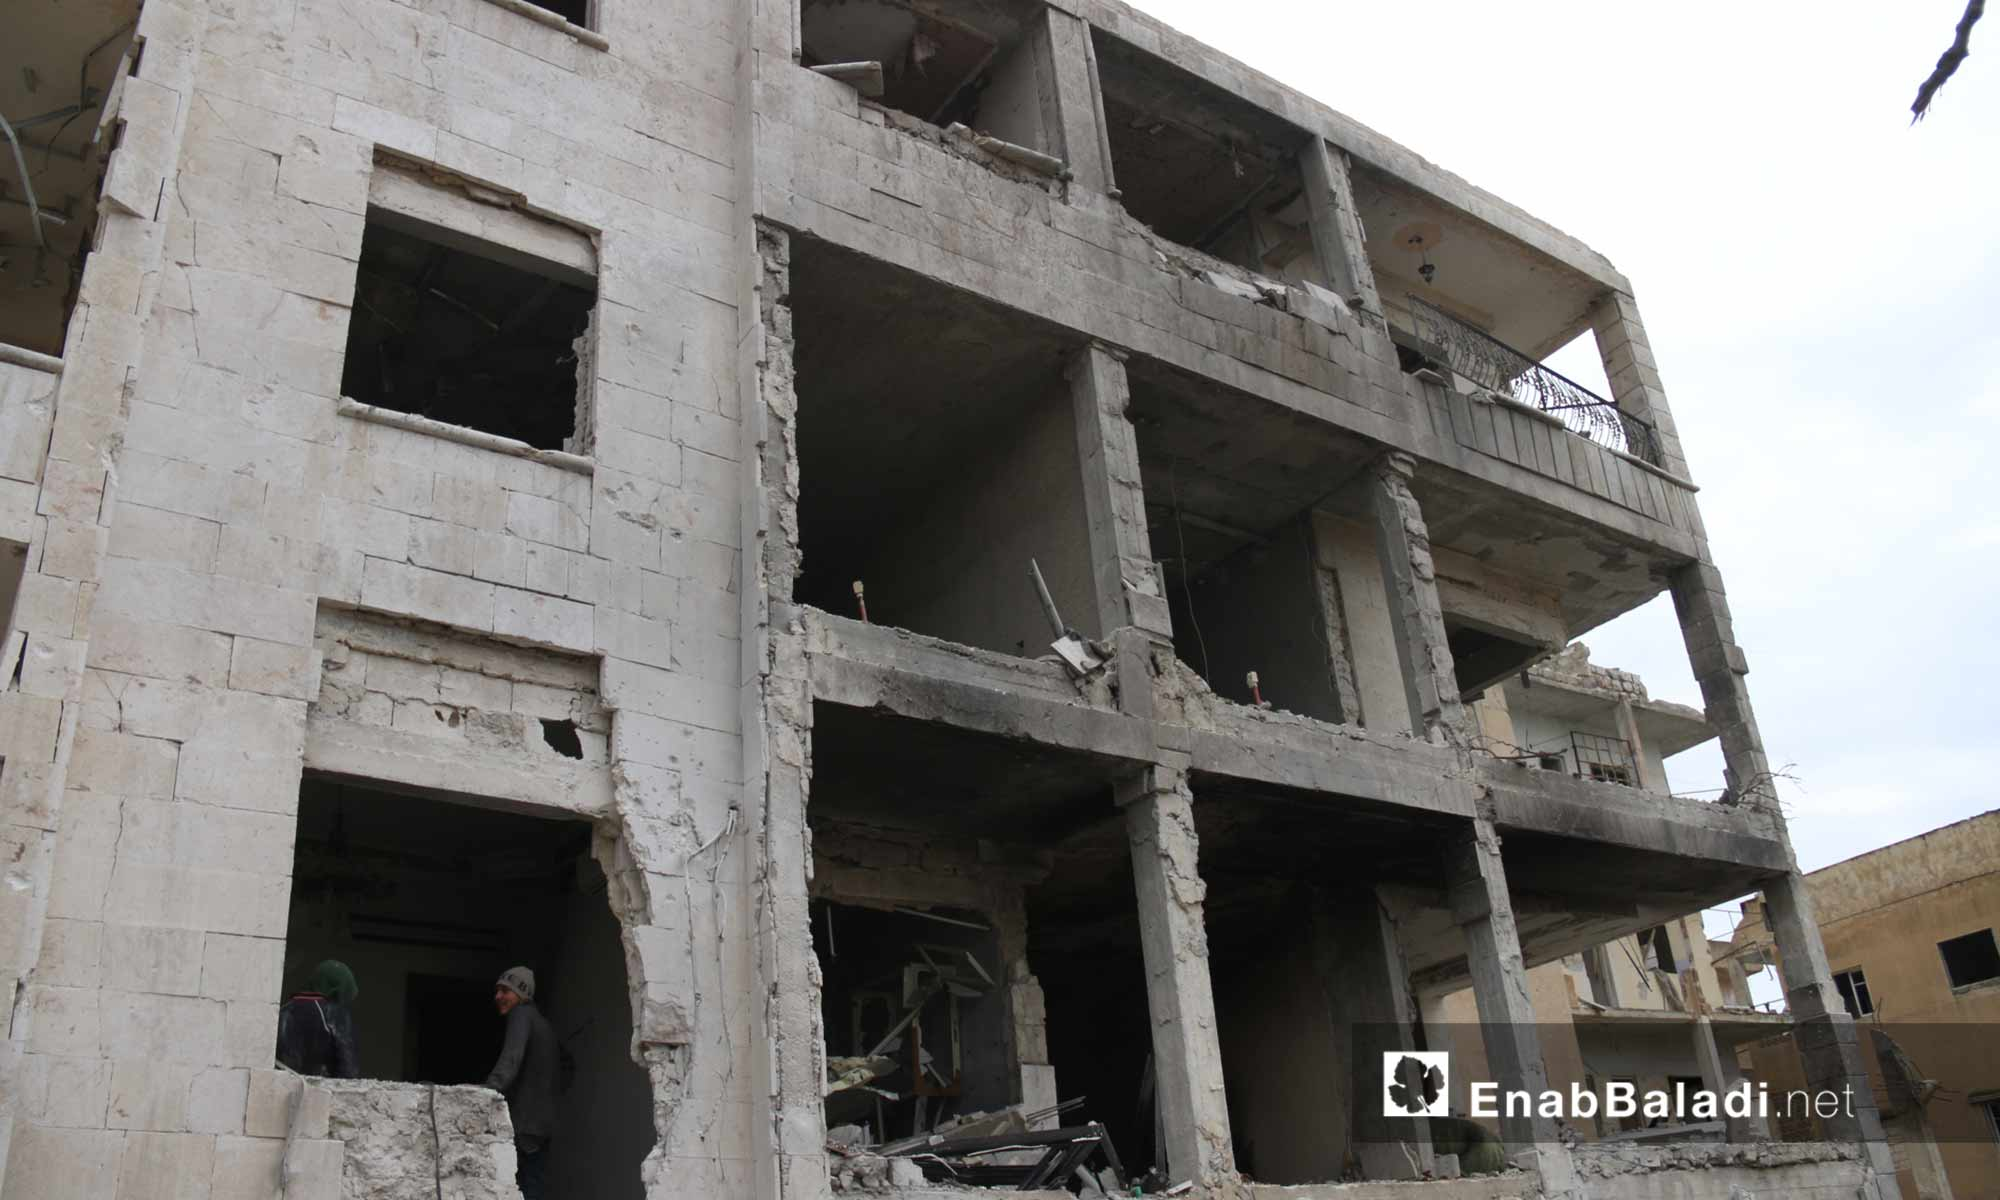 The effects of the Russian shelling of residential neighborhoods in the center of Idlib city – March 14, 2019 (Enab Baladi)